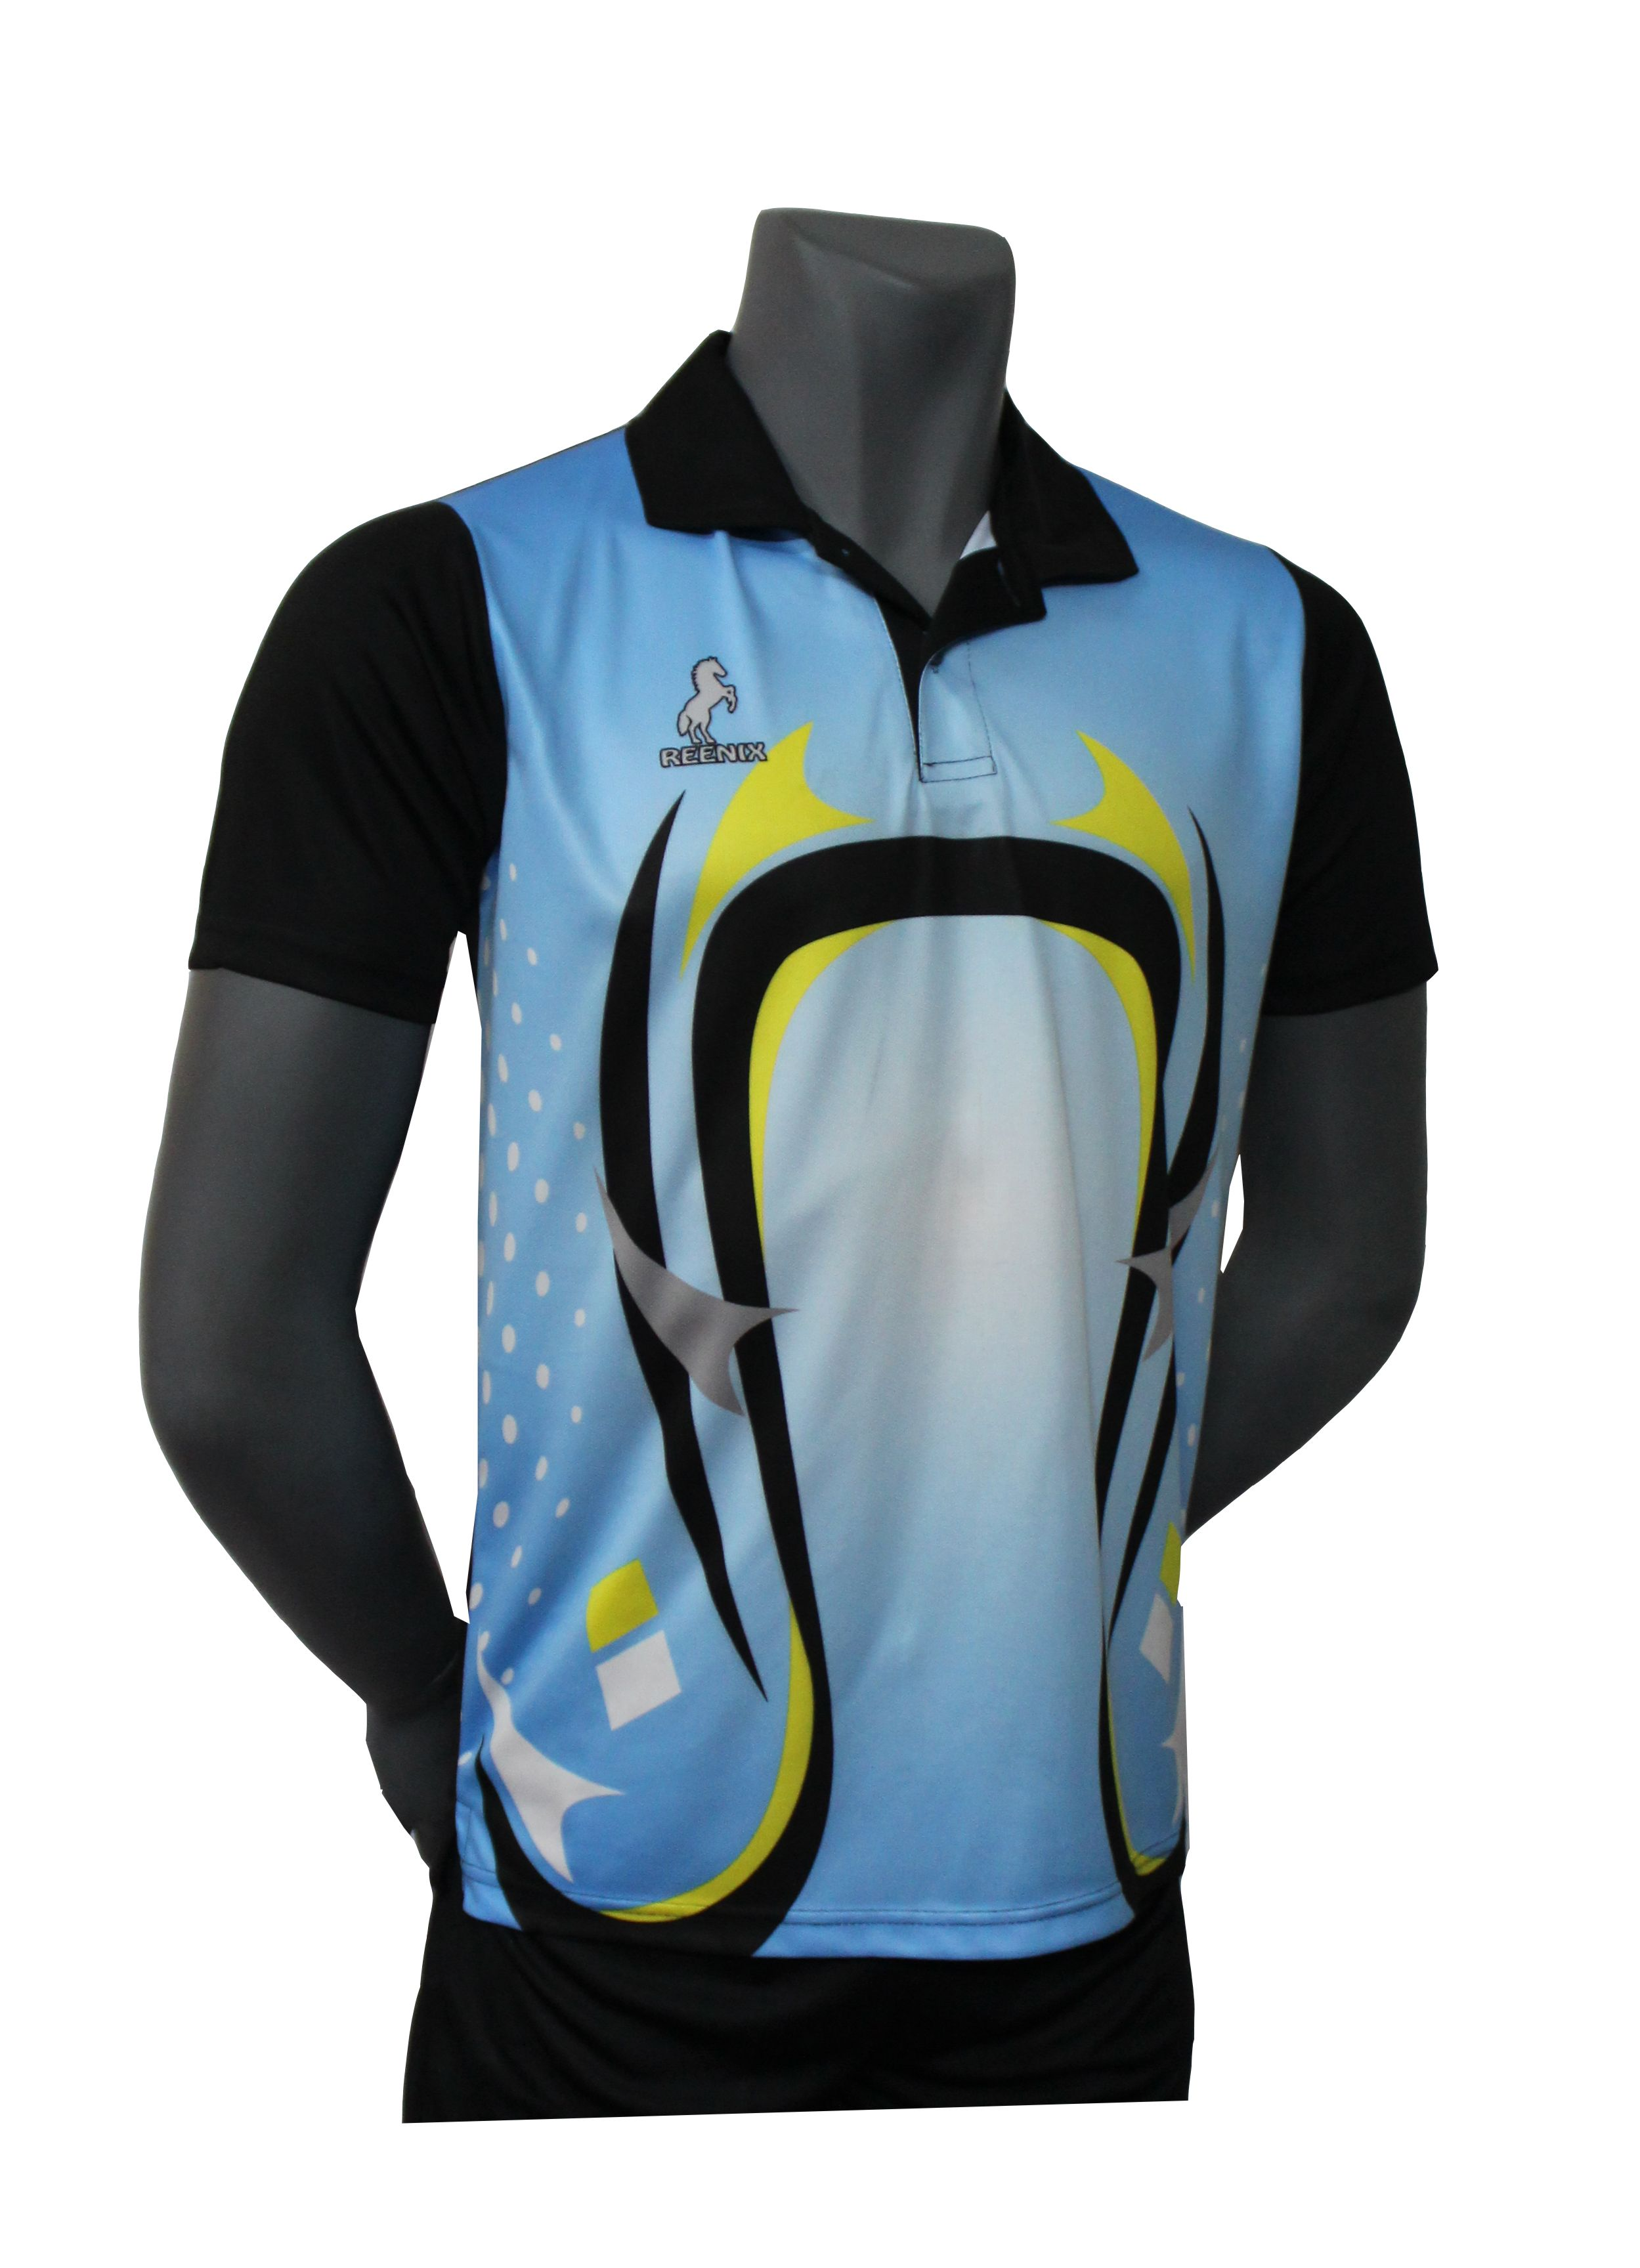 The Ultimate Spirit Of Sports Sport Outfits Sports Brands Print T Shirt